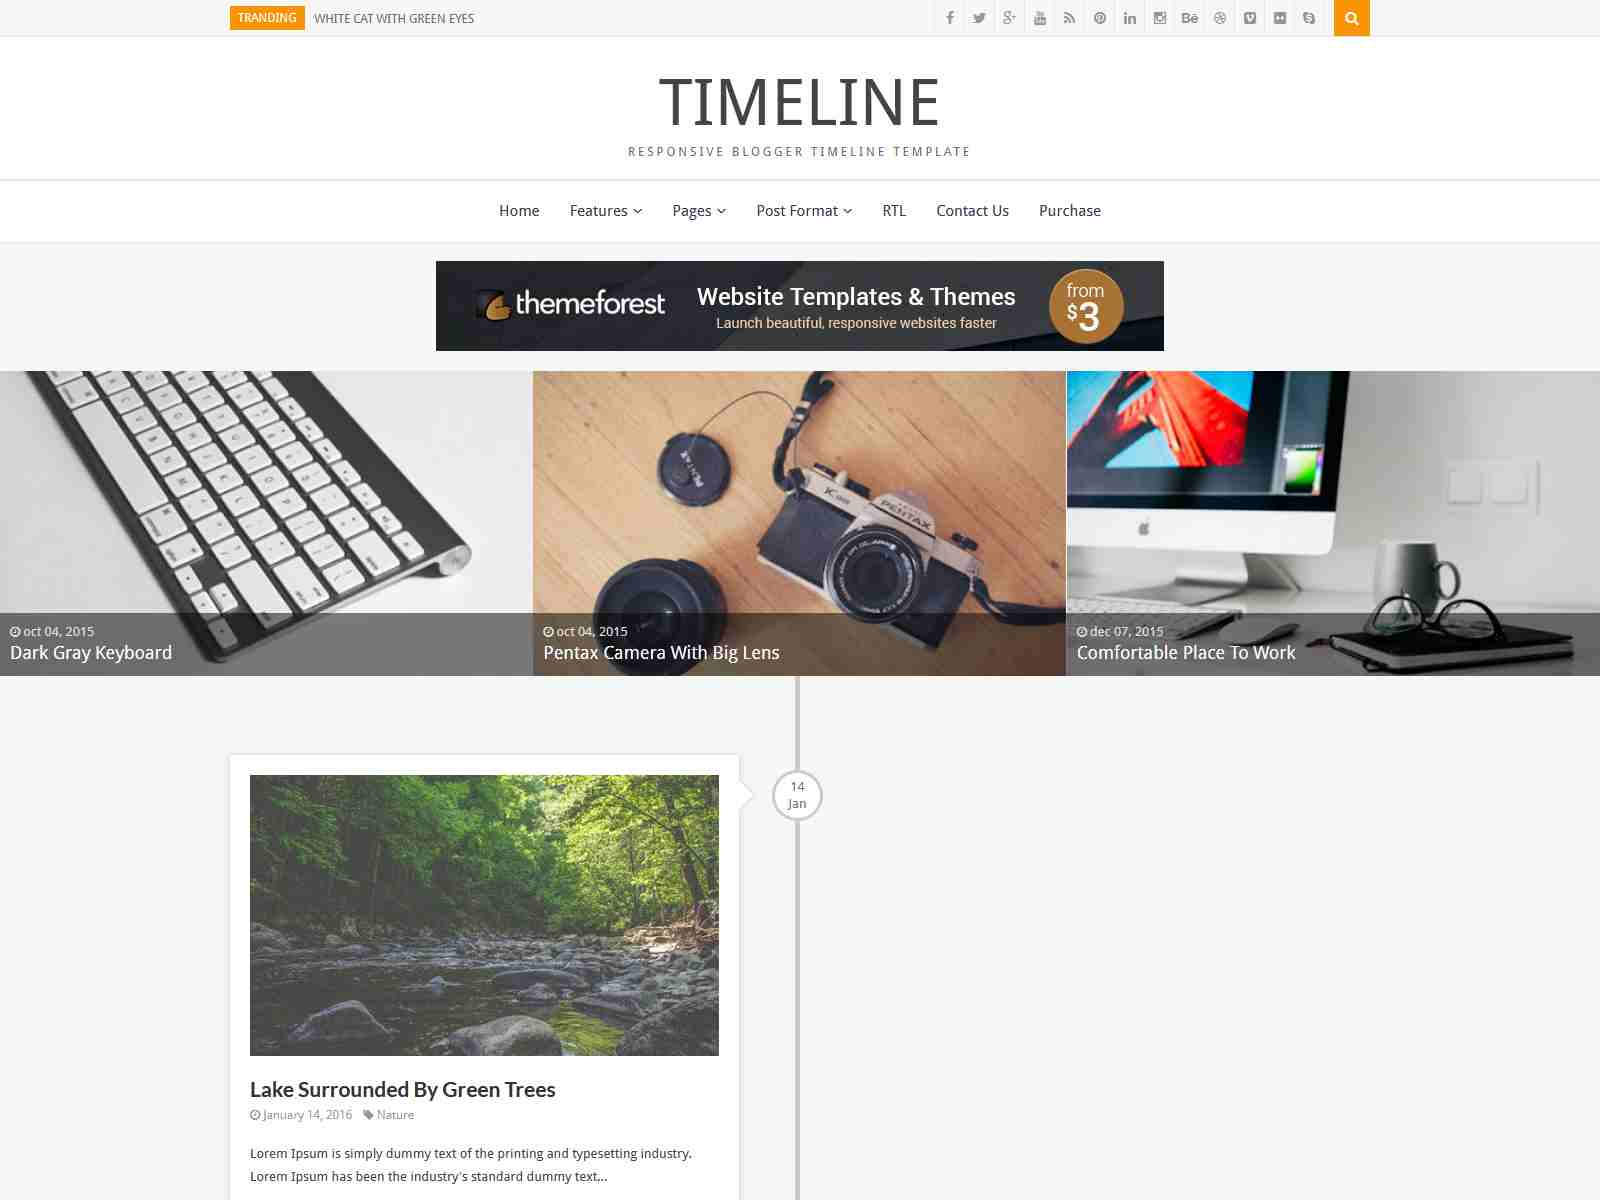 Timeline - Responsive Blogger Timeline Template Personal Blogger, Personal BlogSpot